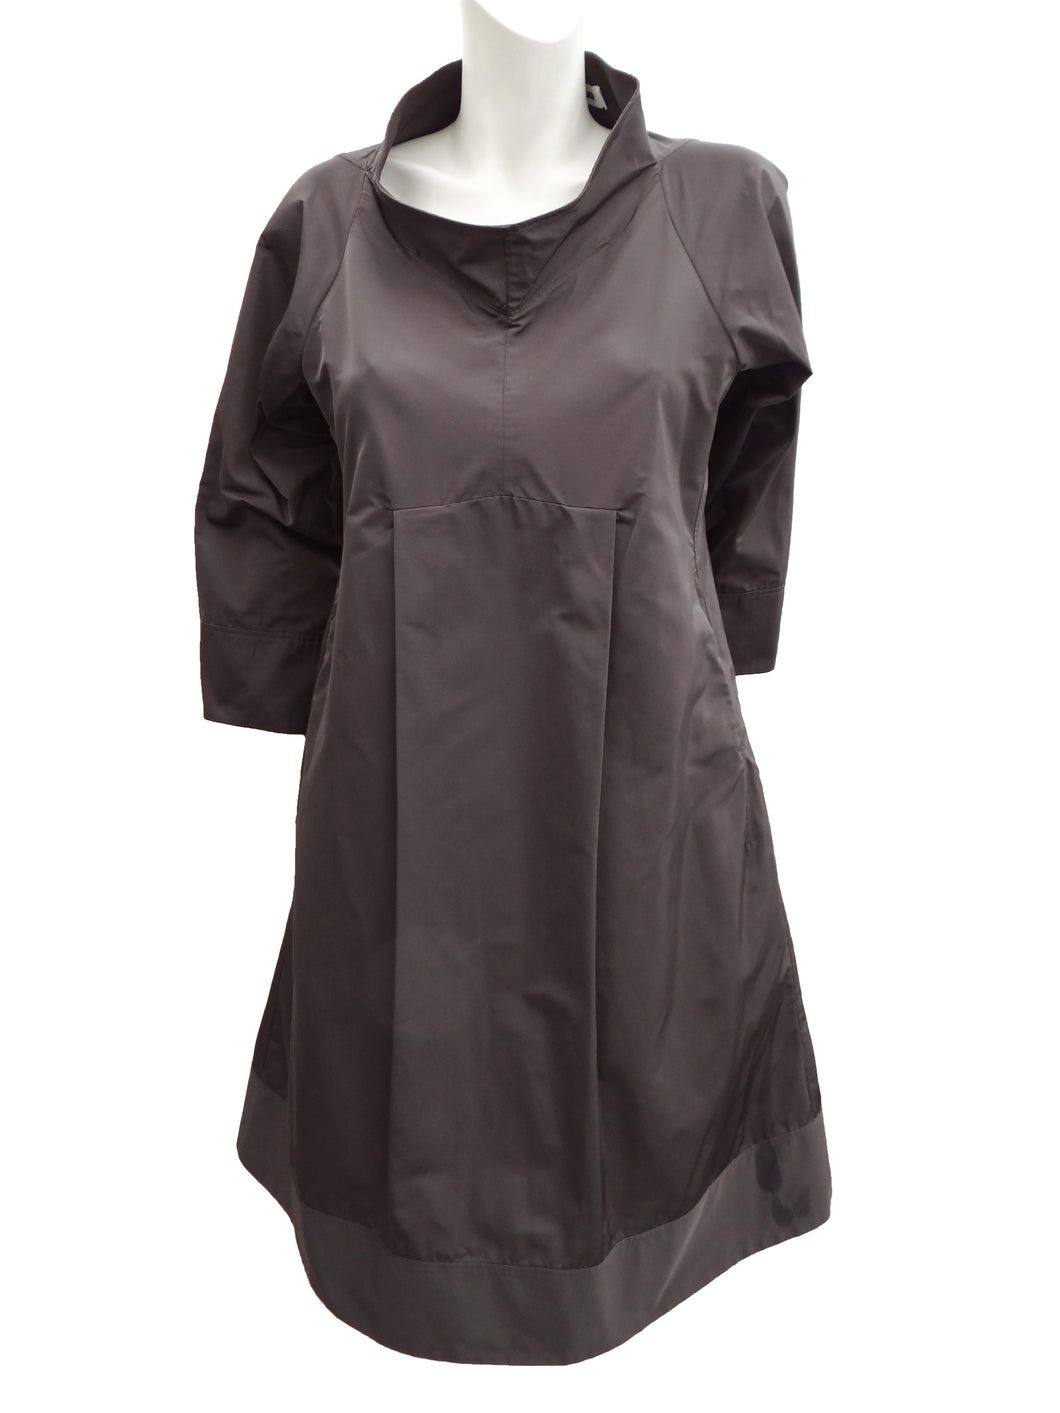 Jil Sander Trapeze Dress in Charcoal Grey, UK12